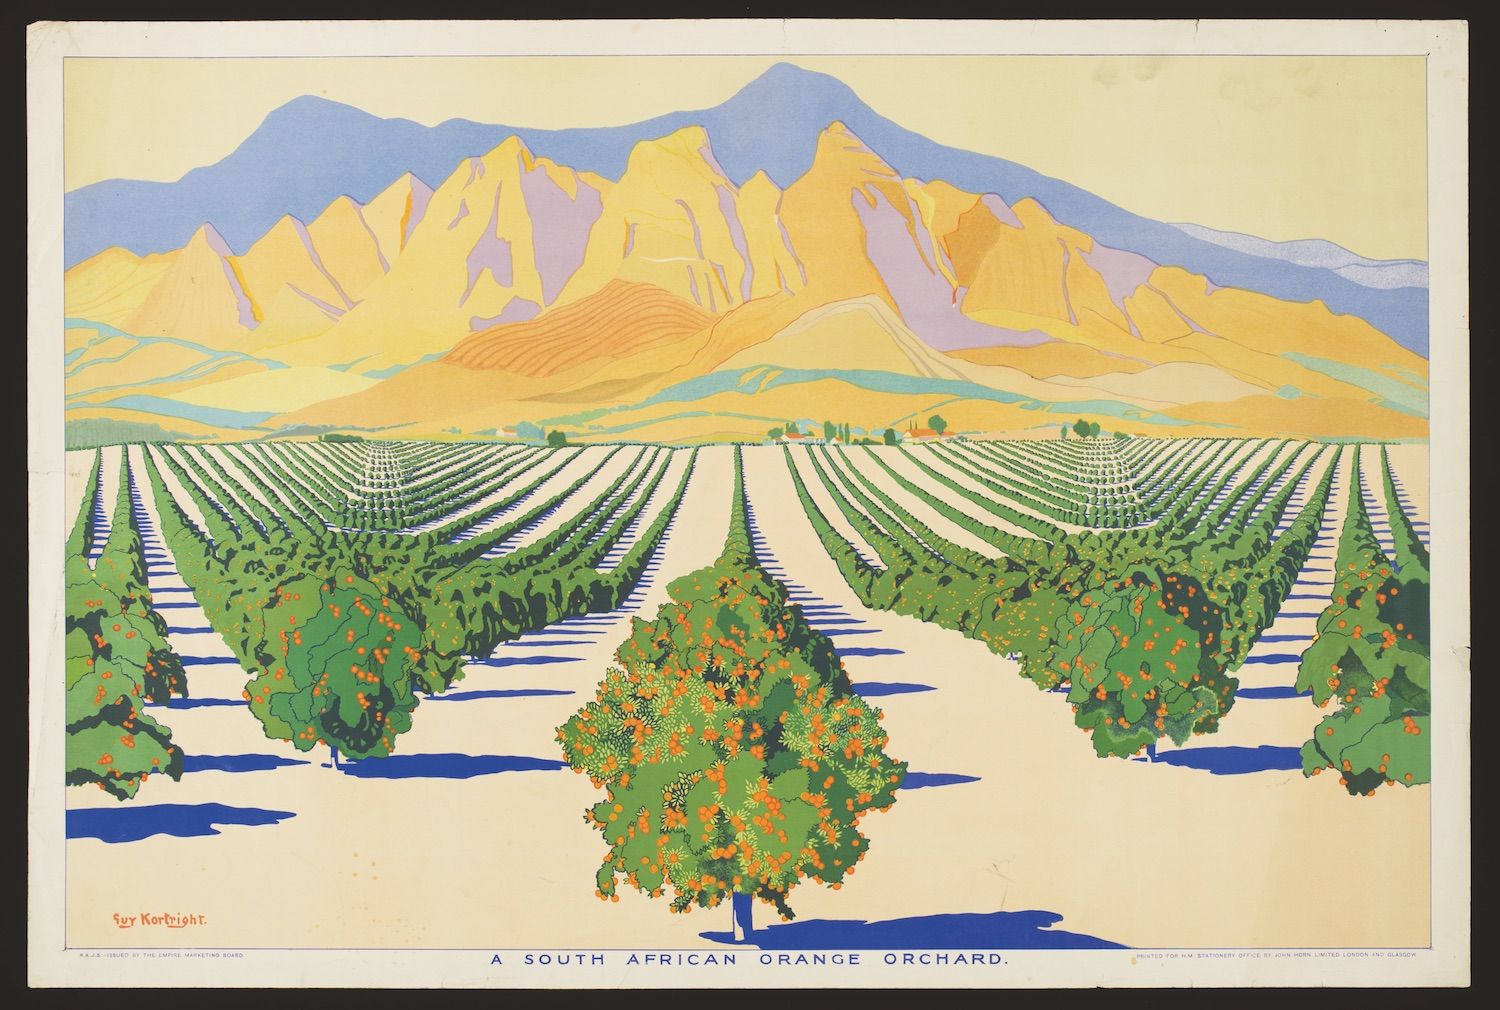 (Reginald) Guy Kortright (1877–1948) A South African Oranae Orchard from Summer's Oranaes from South Africa Issued by the Empire Marketing Board. Great Britain, 1928